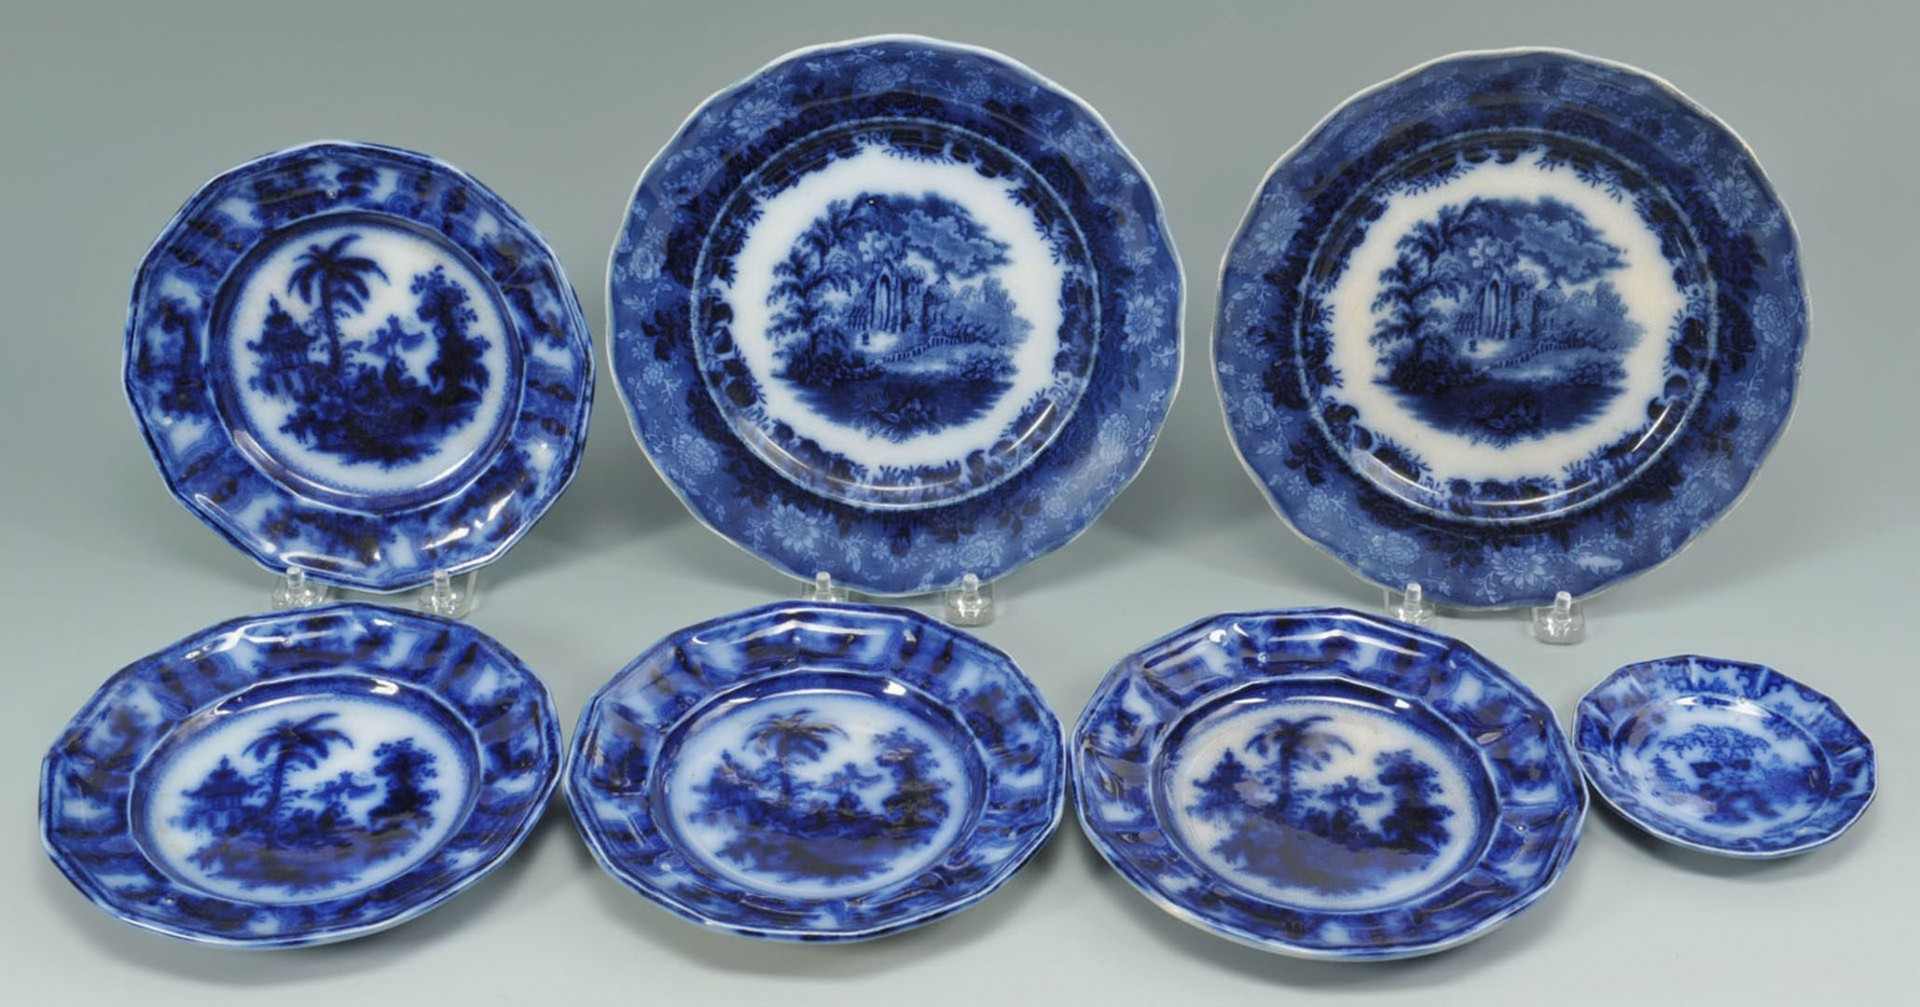 Lot 2872338: 12 pcs of English Ceramics, incl. Flow Blue